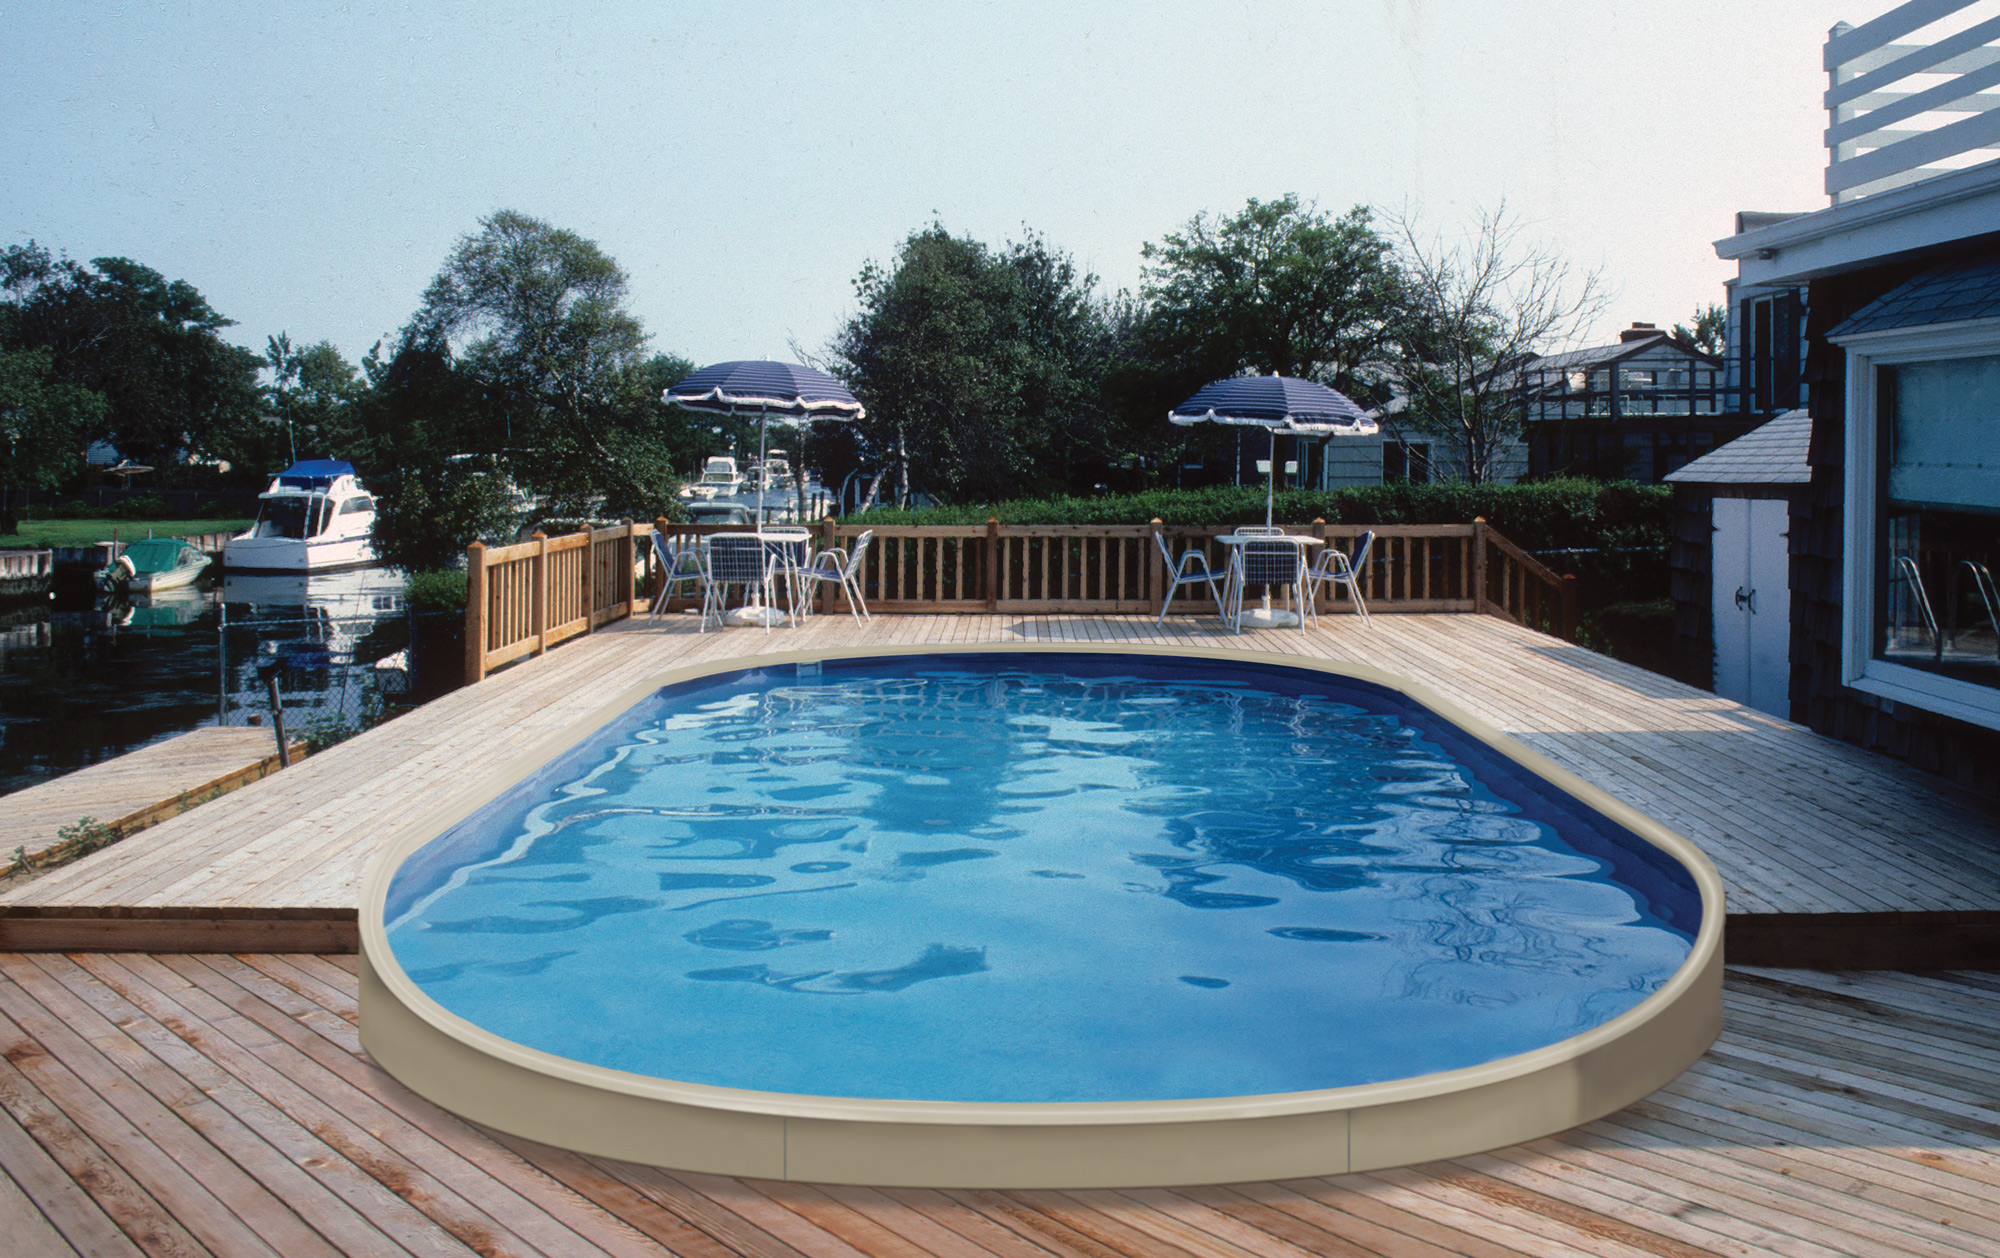 Buy and oval shaped custom above ground pool online - Custom above ground pool ...